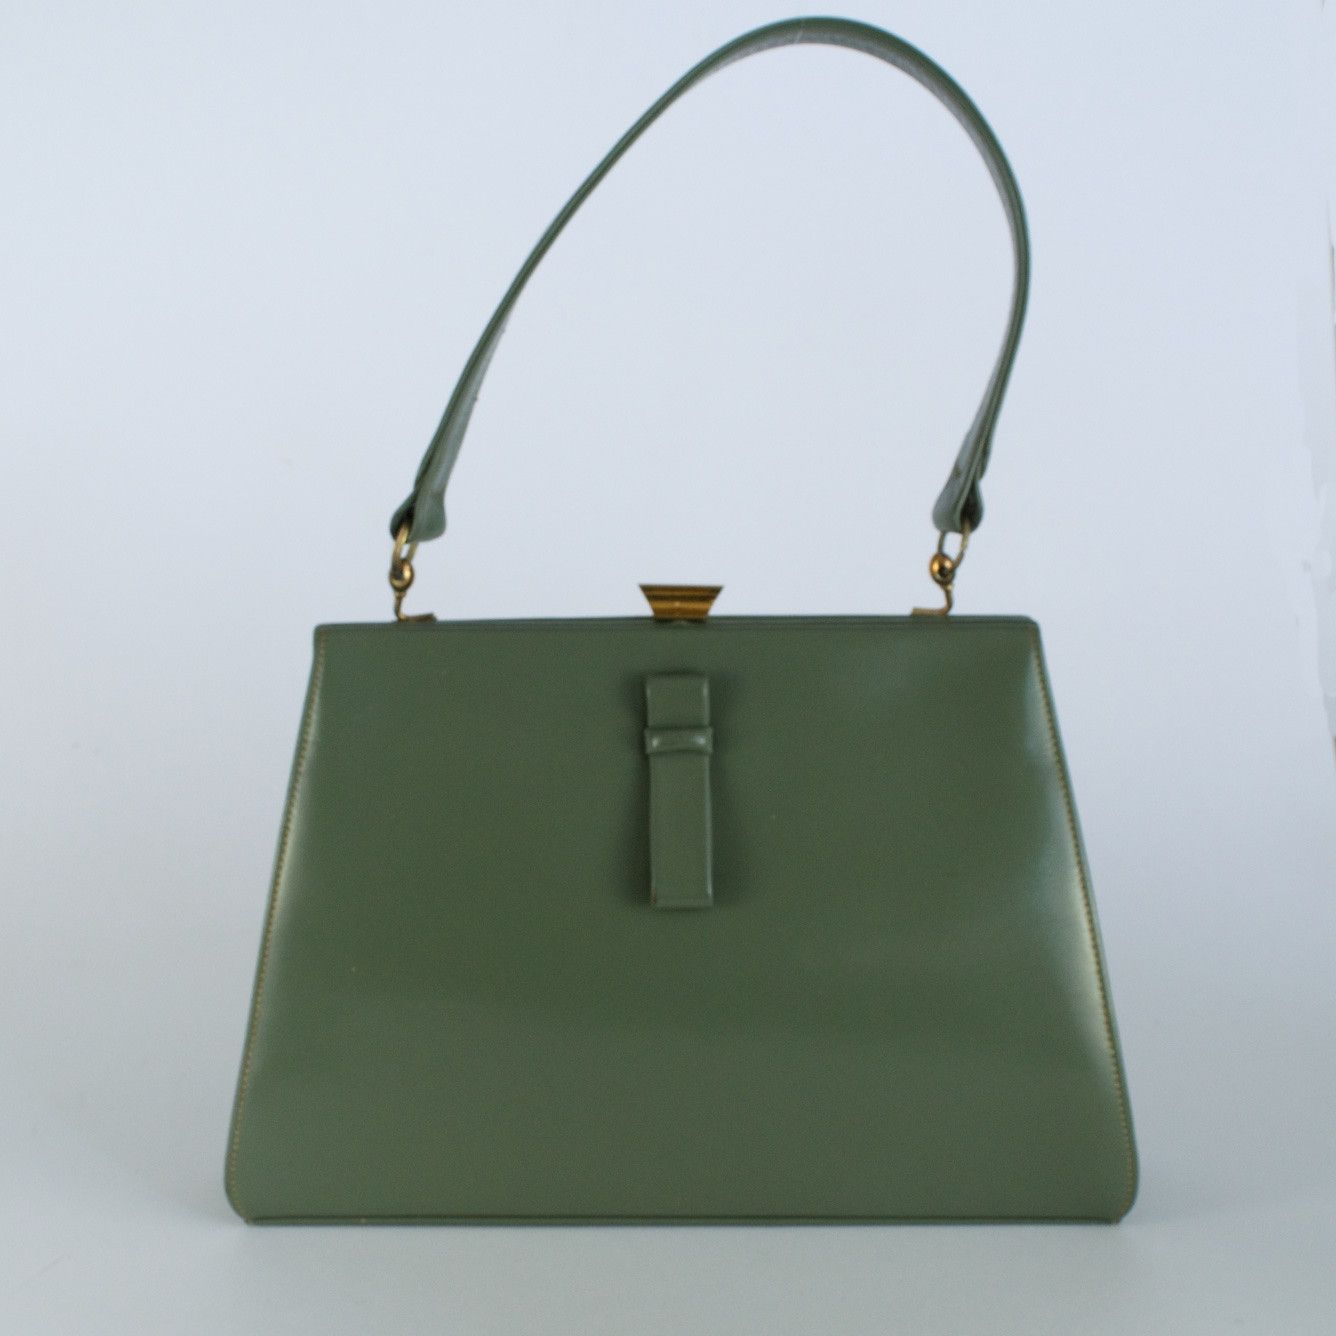 Green vintage leather 1950's framed handbag made in England by ...